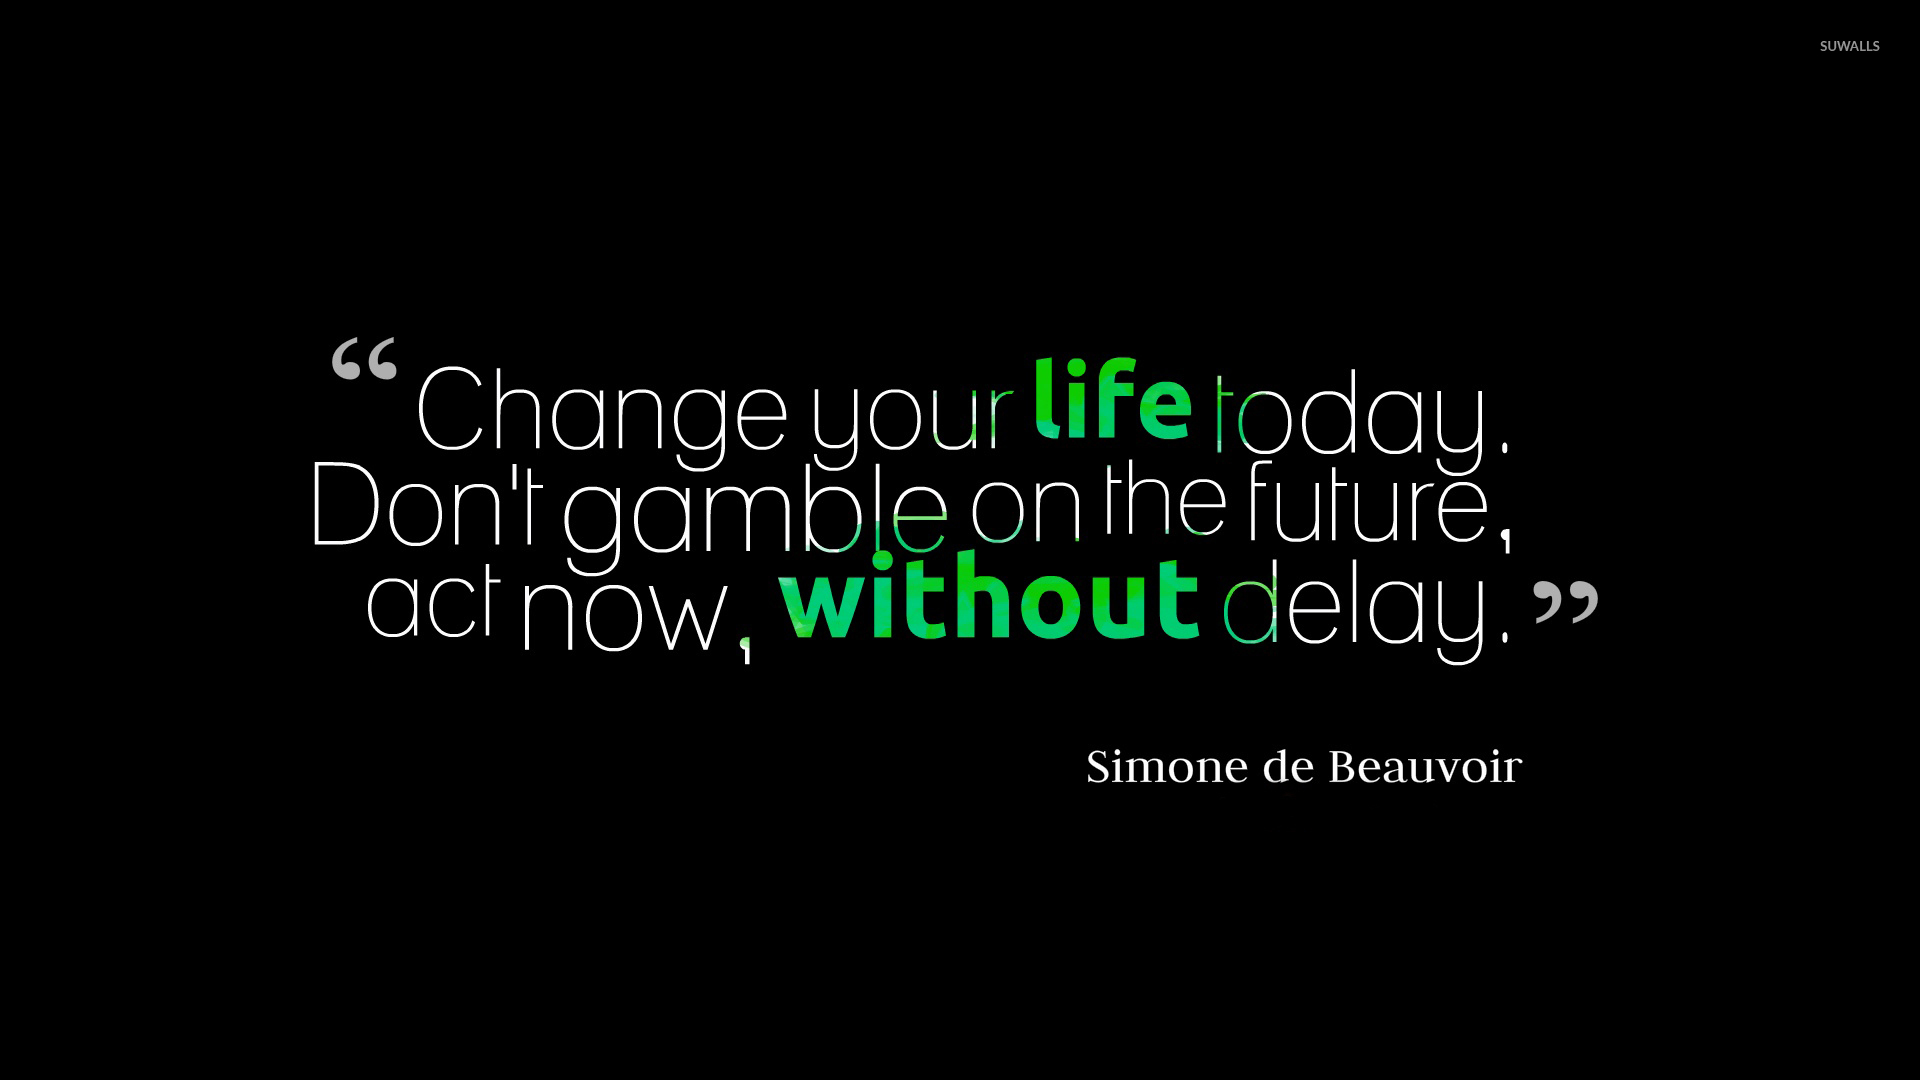 Change Your Life Today Without Delay Wallpaper